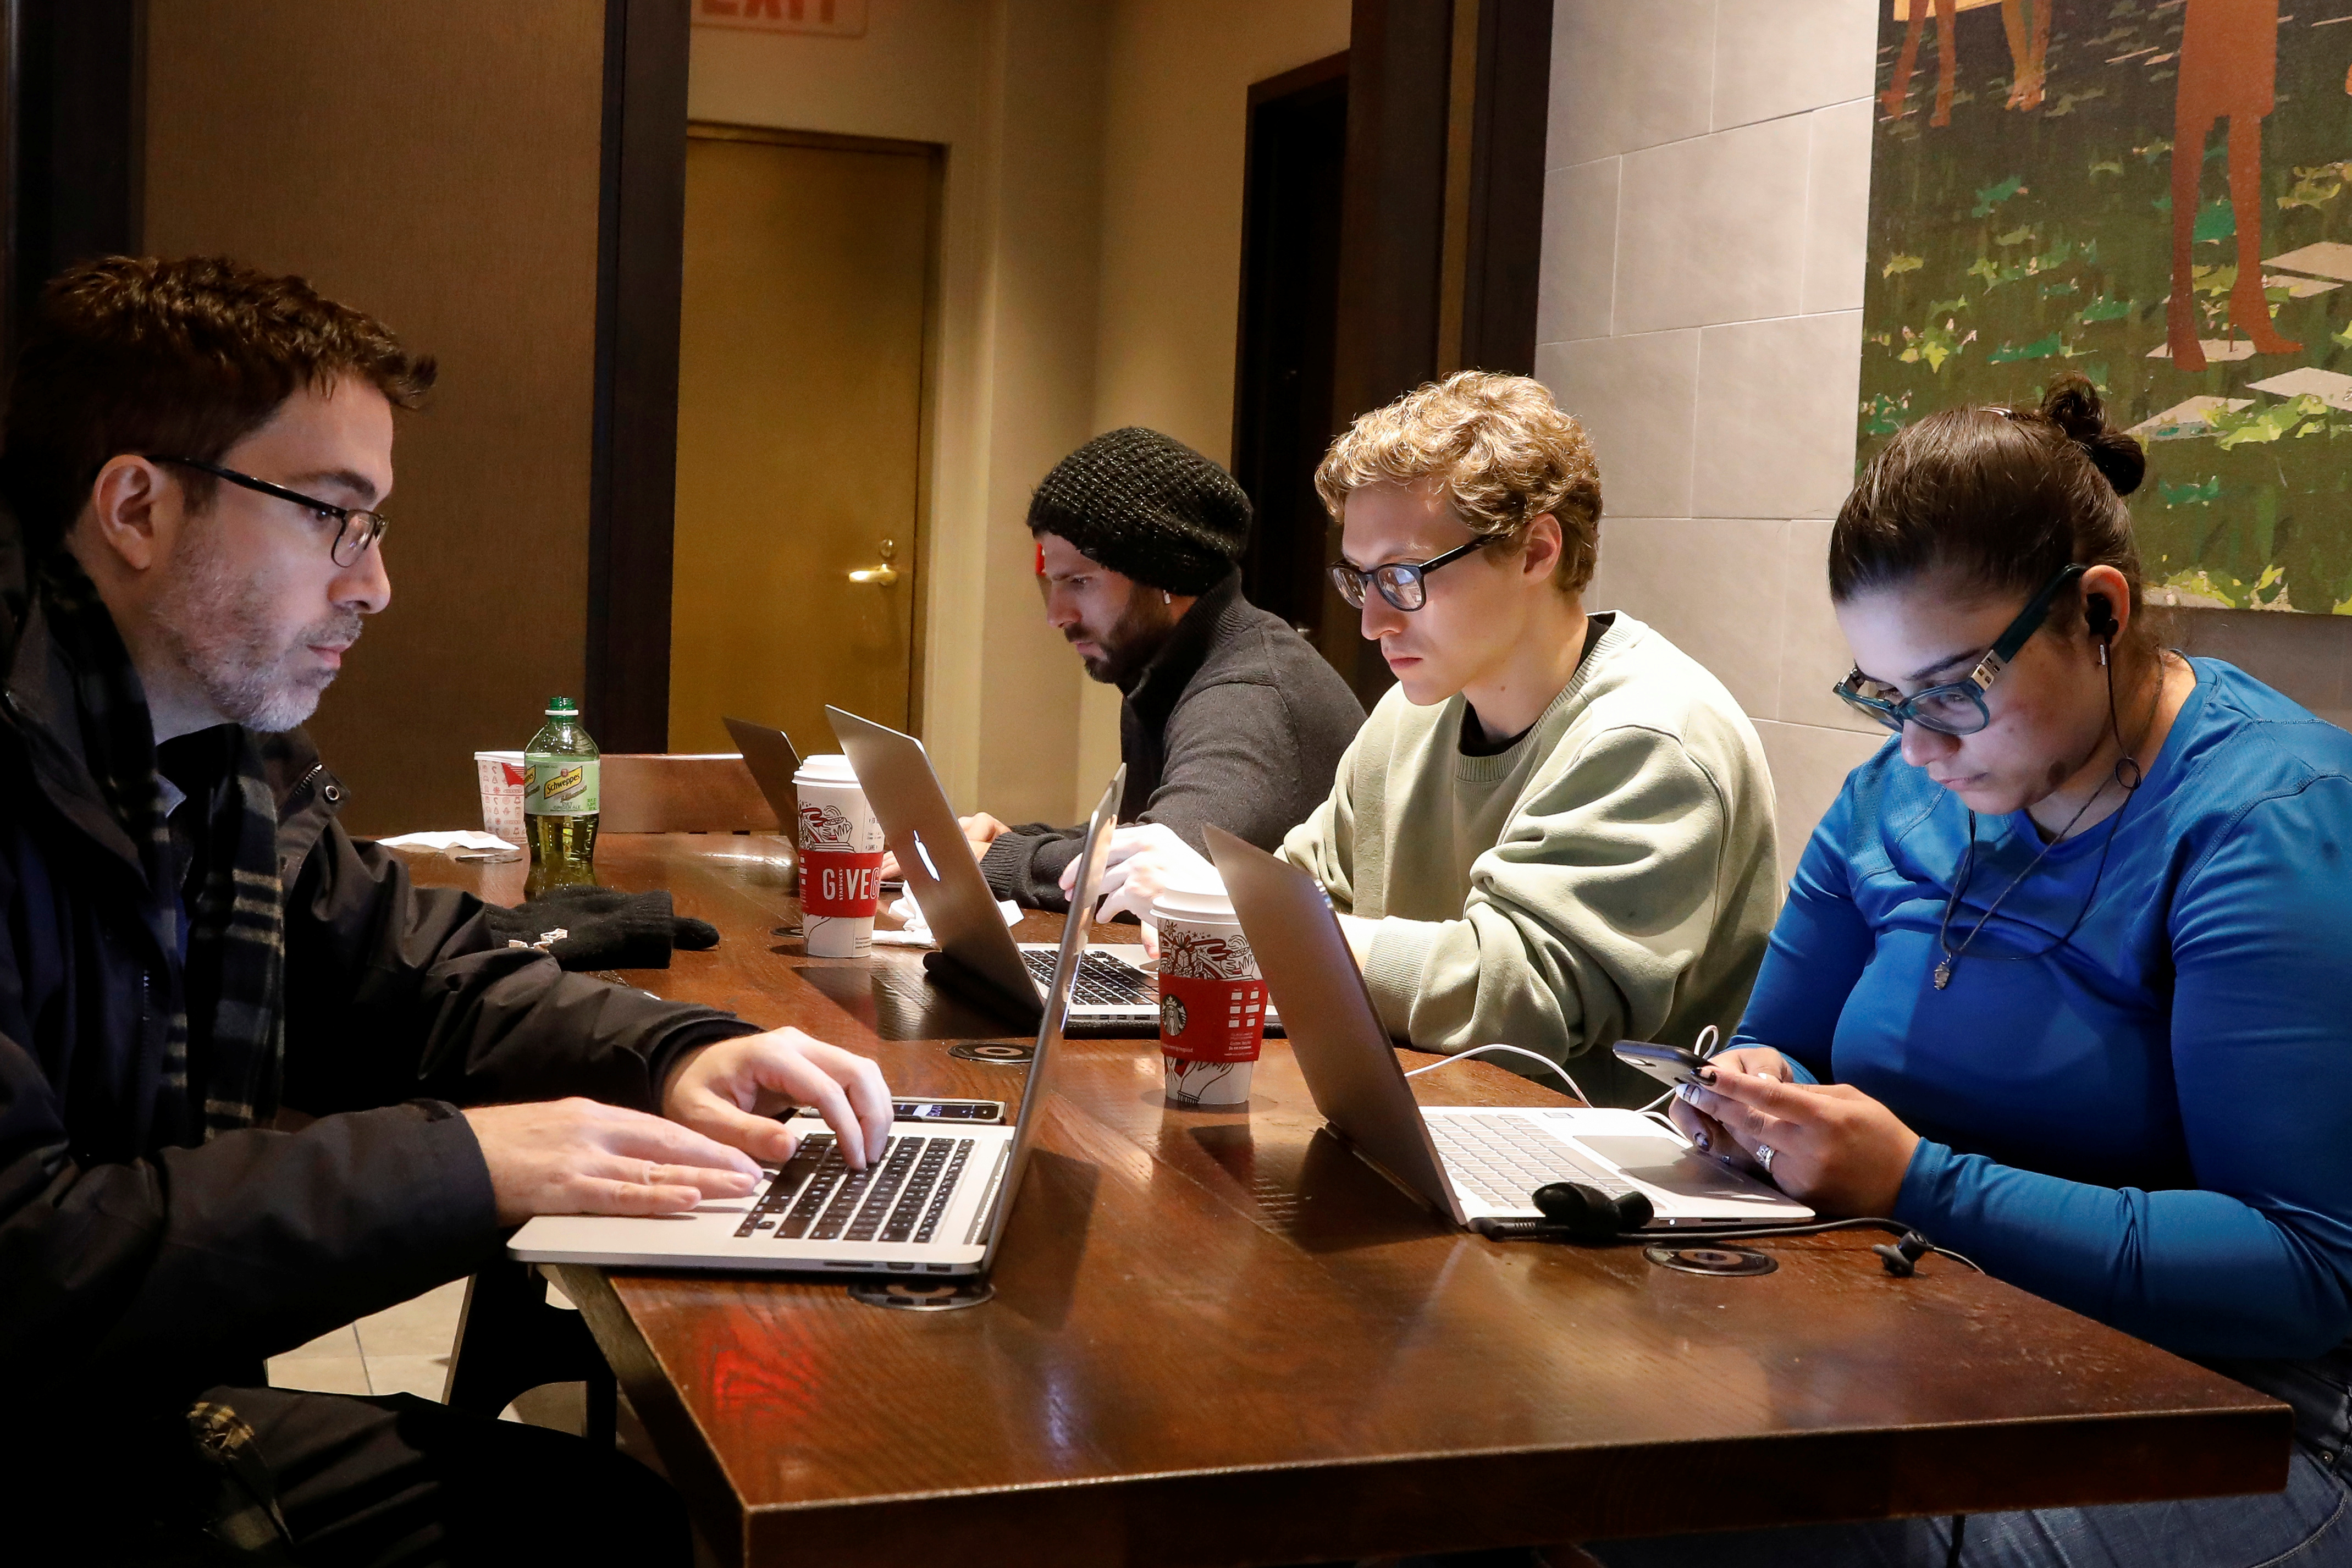 Customers use the internet at a Starbucks in the financial district in New York City, U.S., December 14, 2017. REUTERS/Brendan McDermid - RC174920FF60